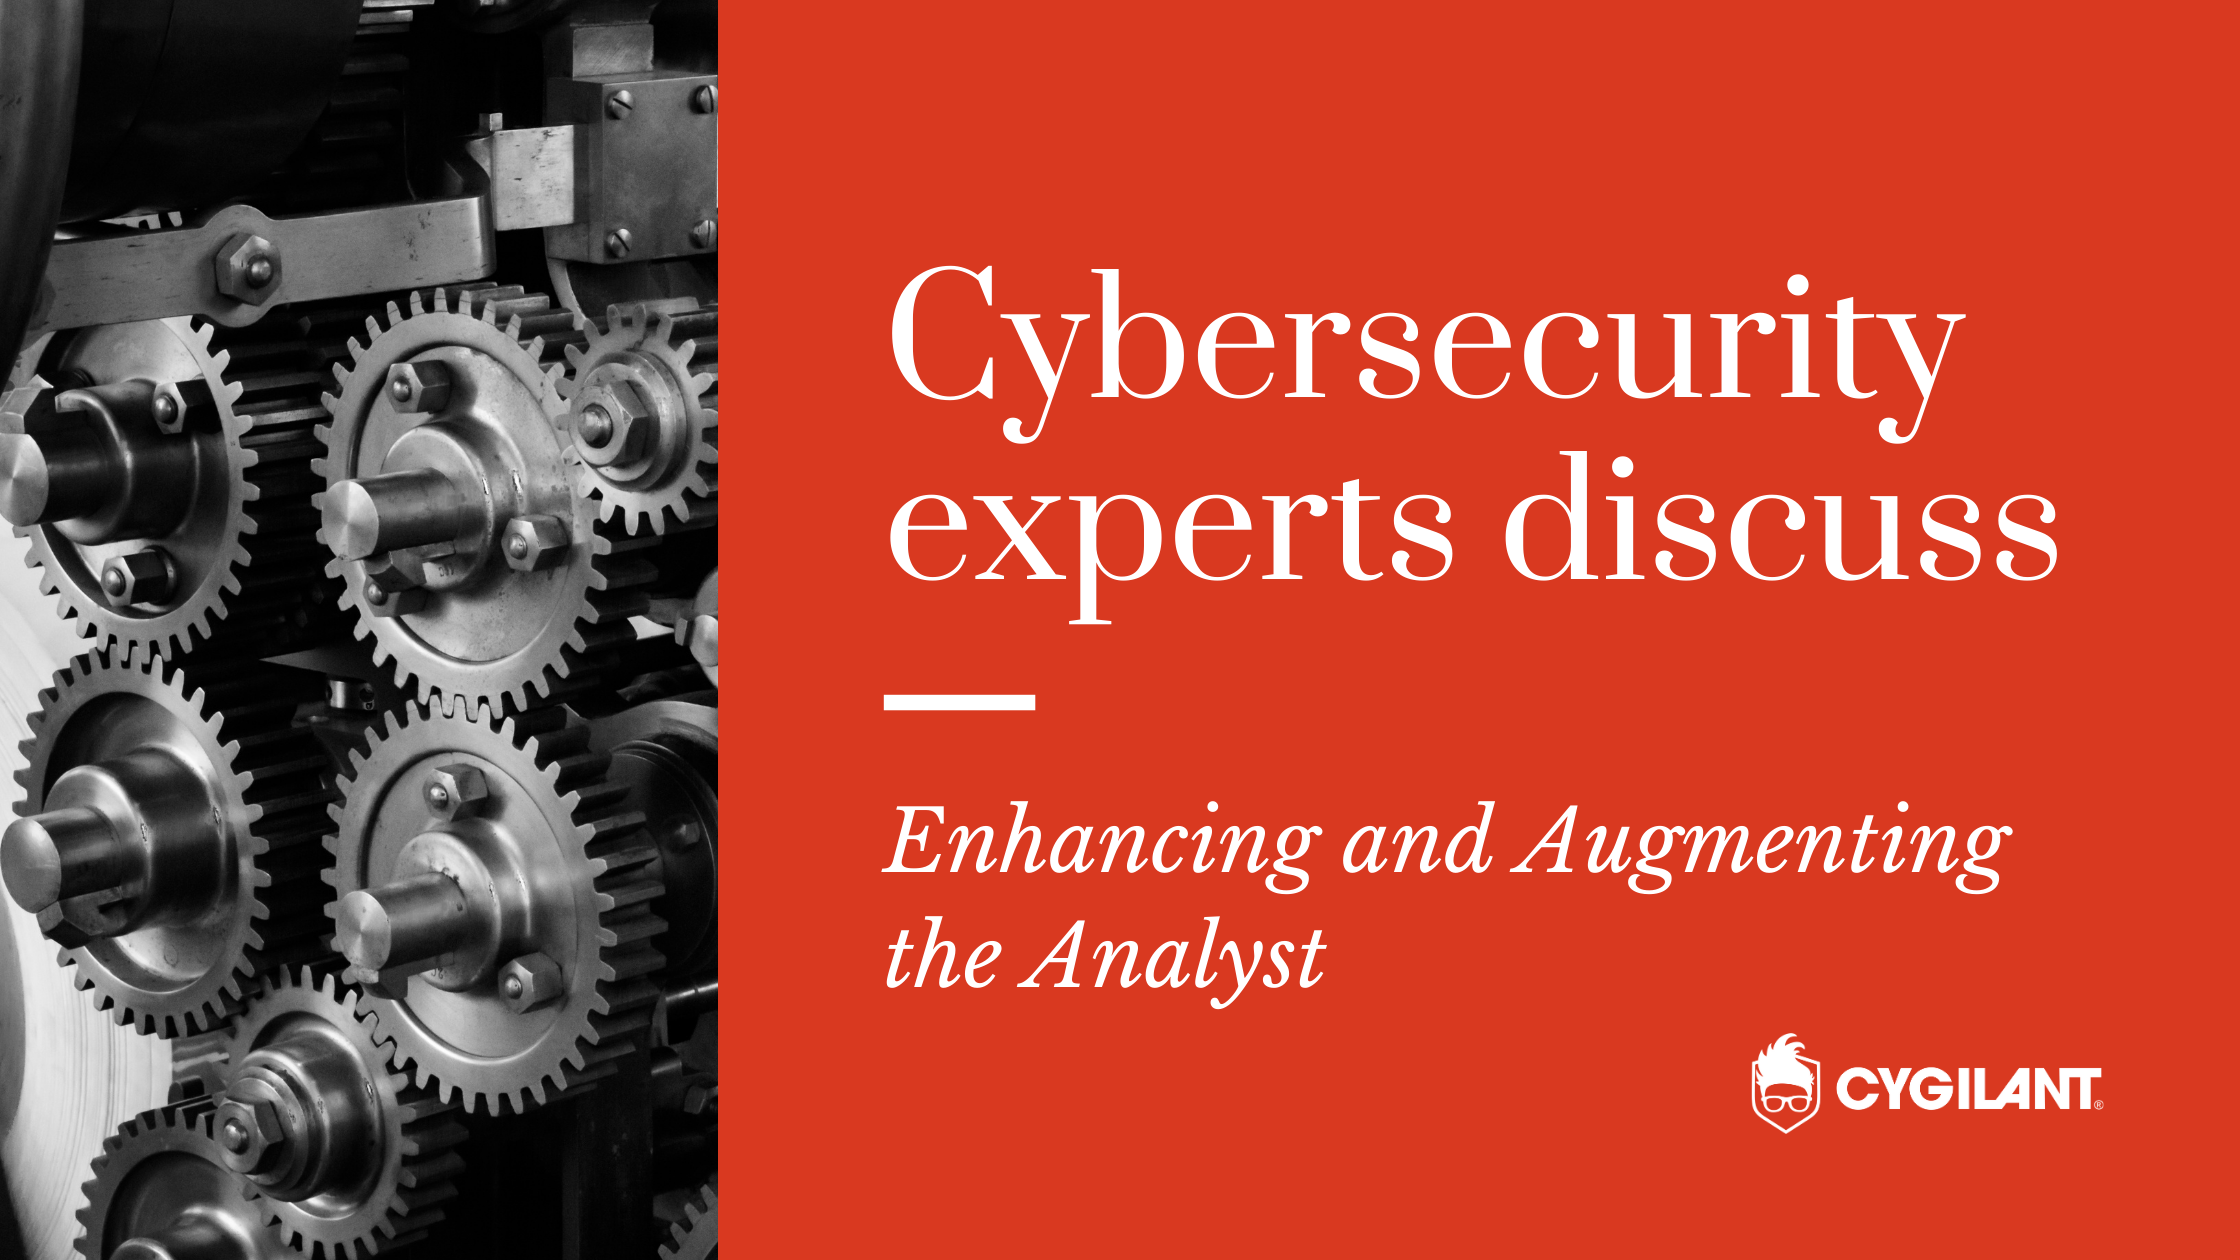 Cybersecurity Experts Discuss: Enhancing and Augmenting the Analyst